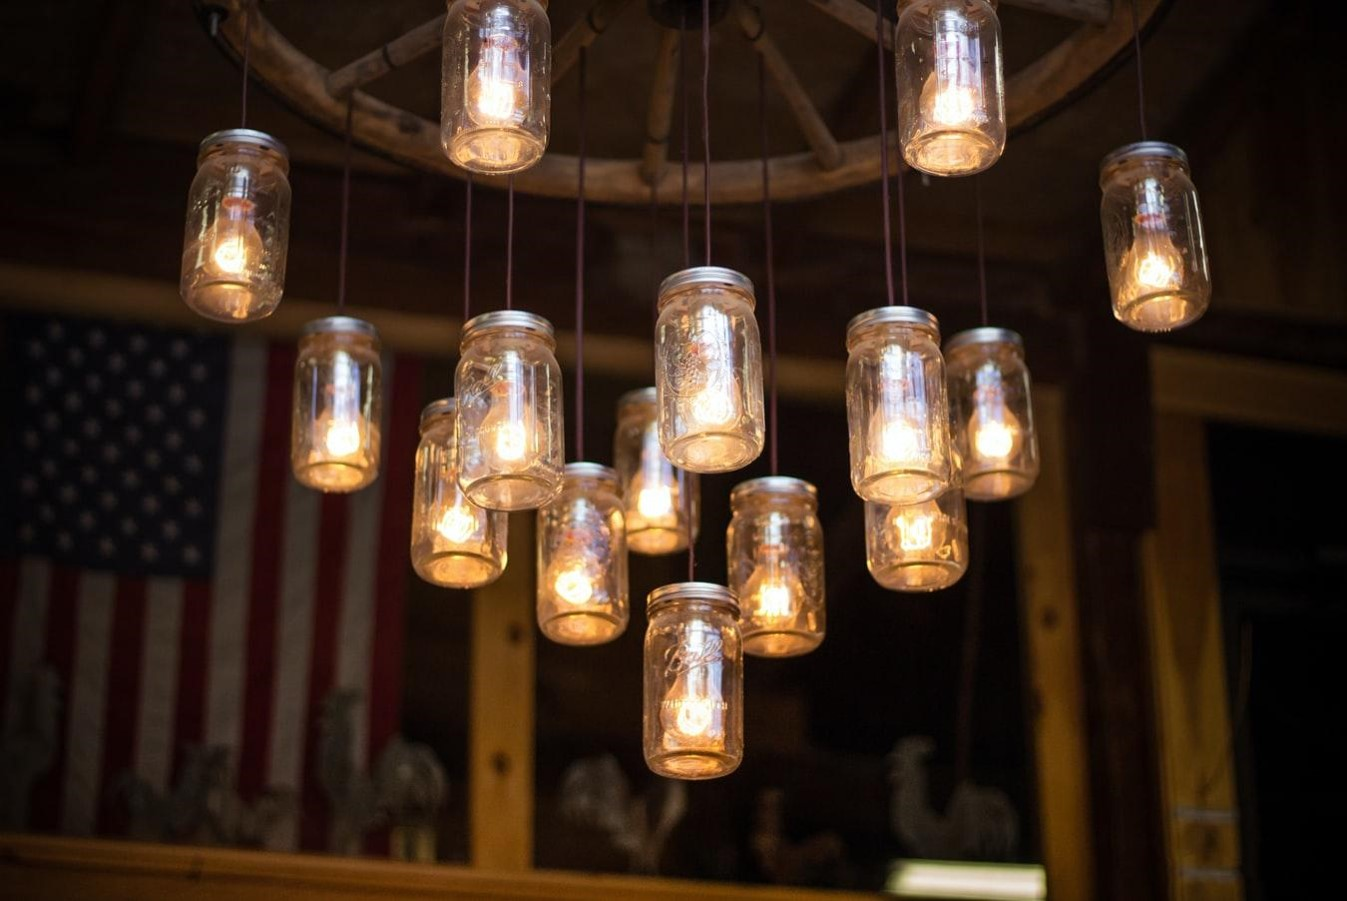 DIY Tutorial - How to Make Your Own Inexpensive Chandelier